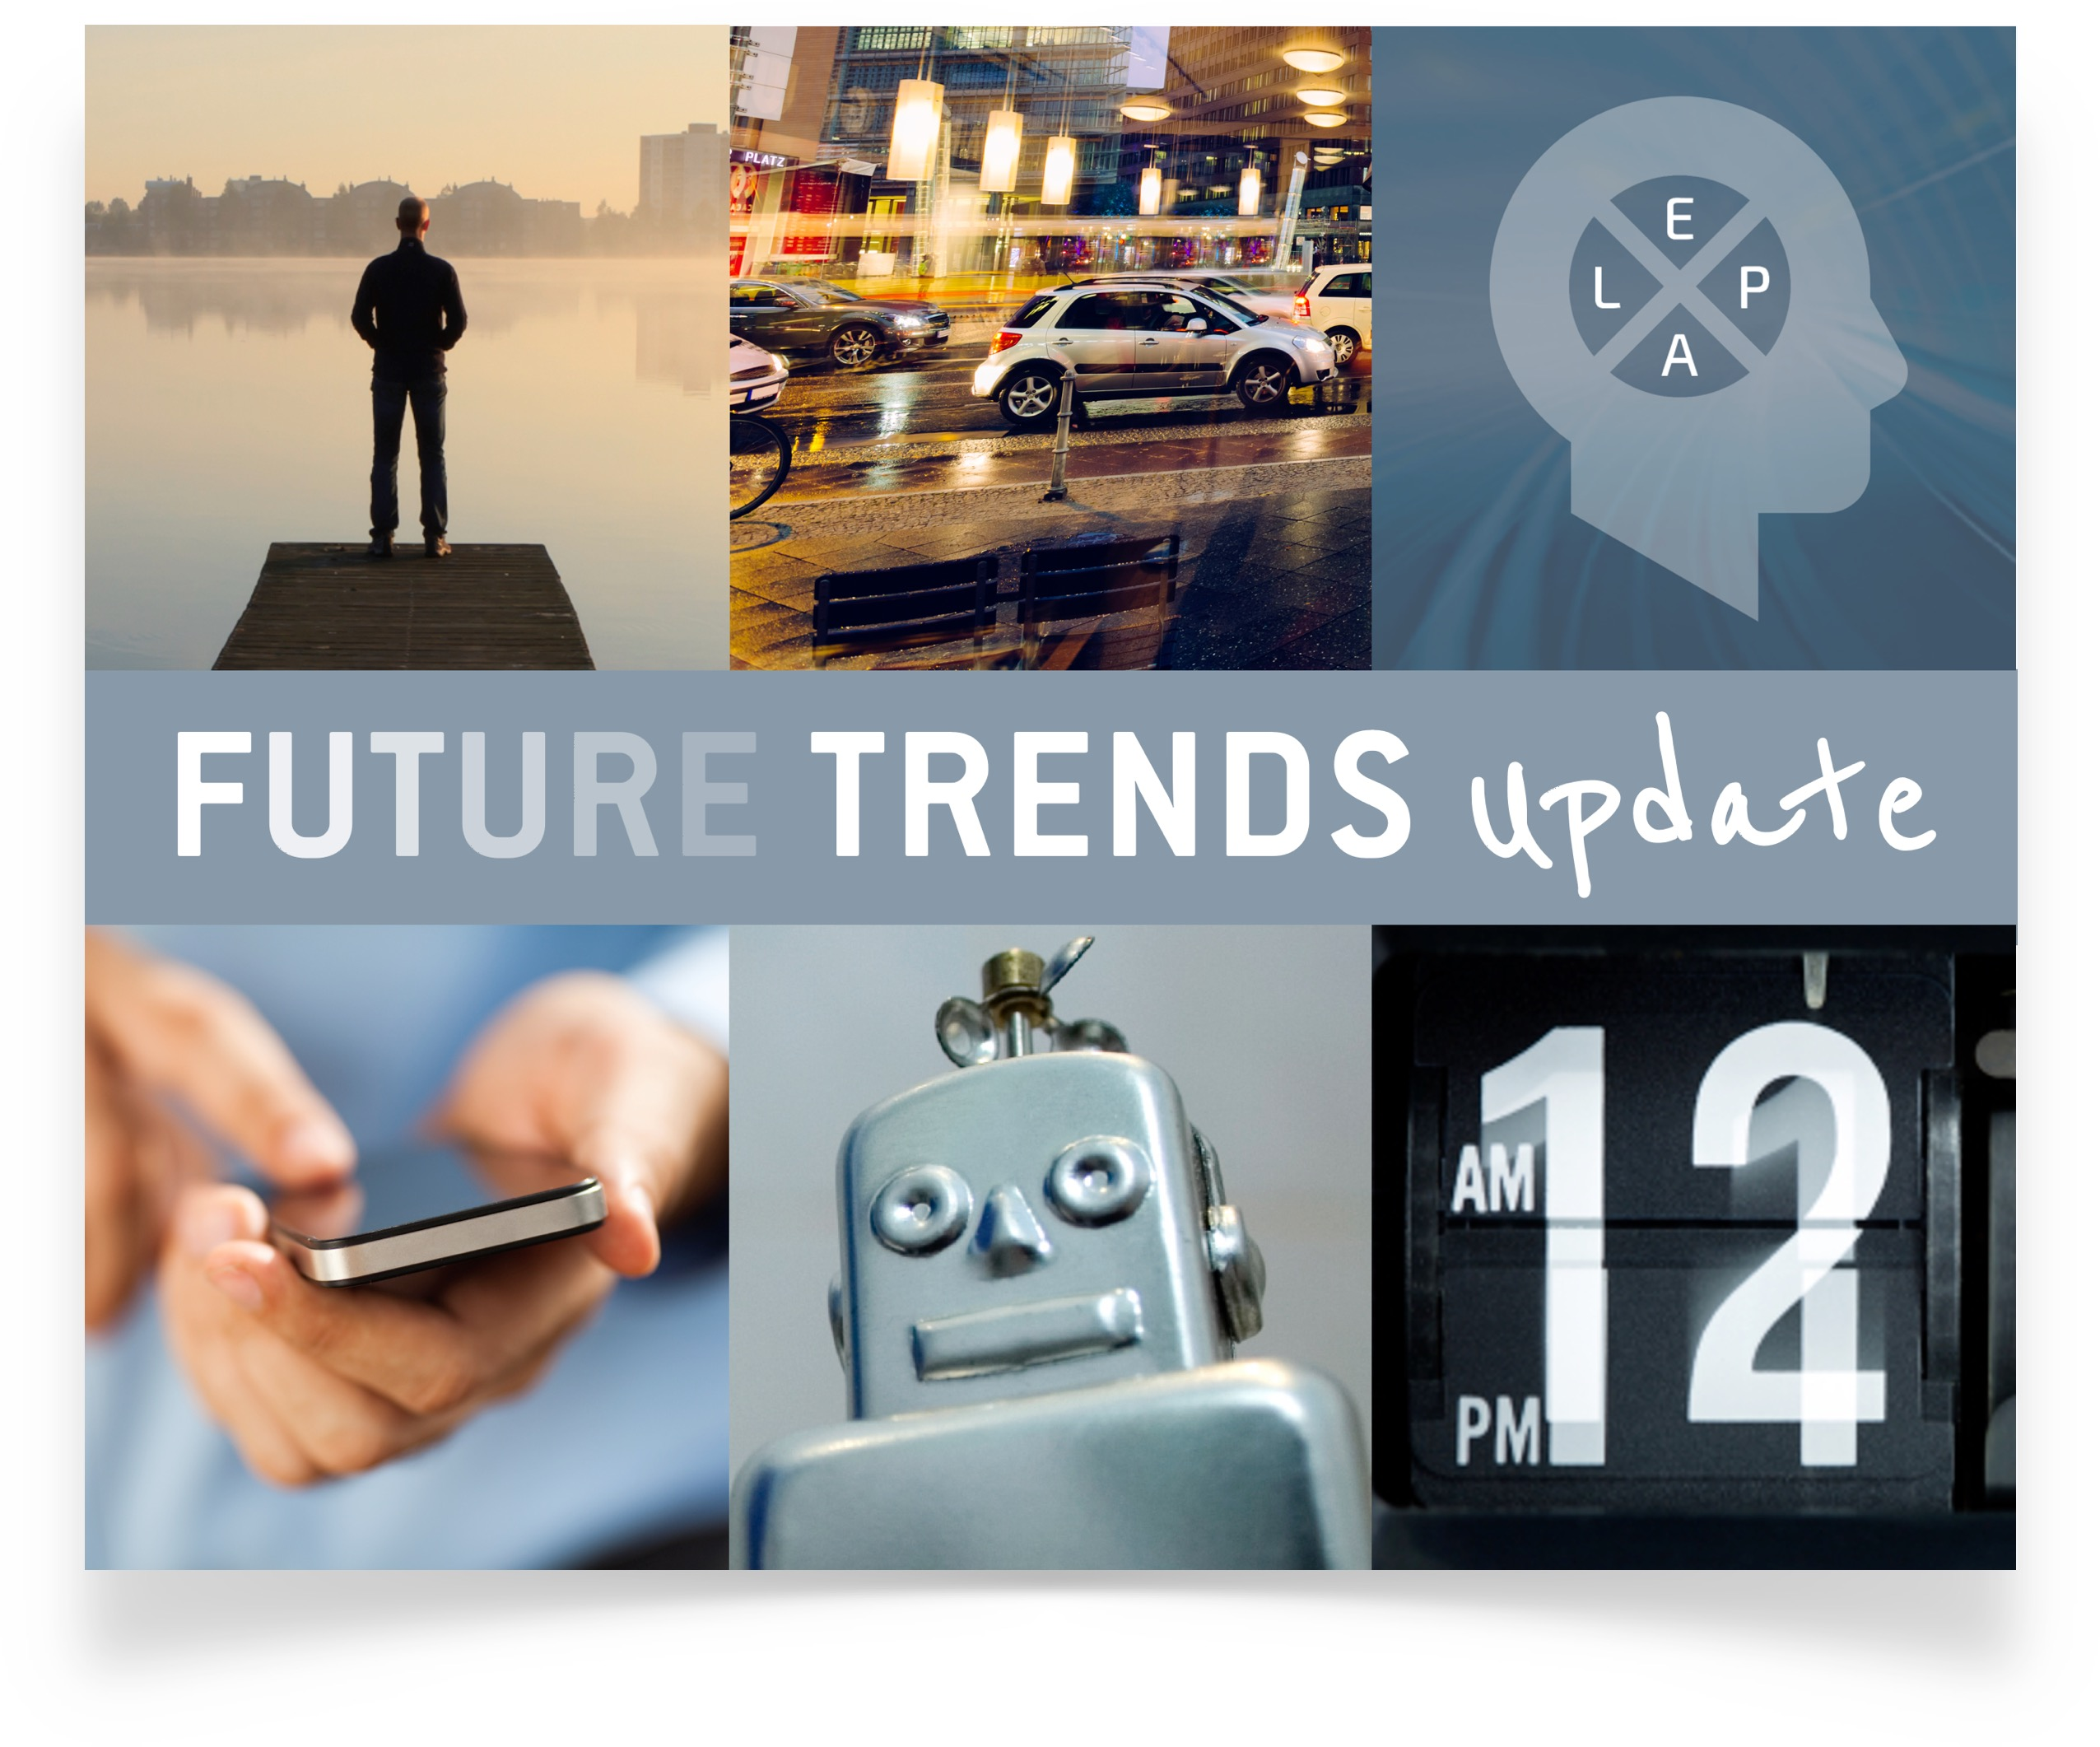 Future Trends Update